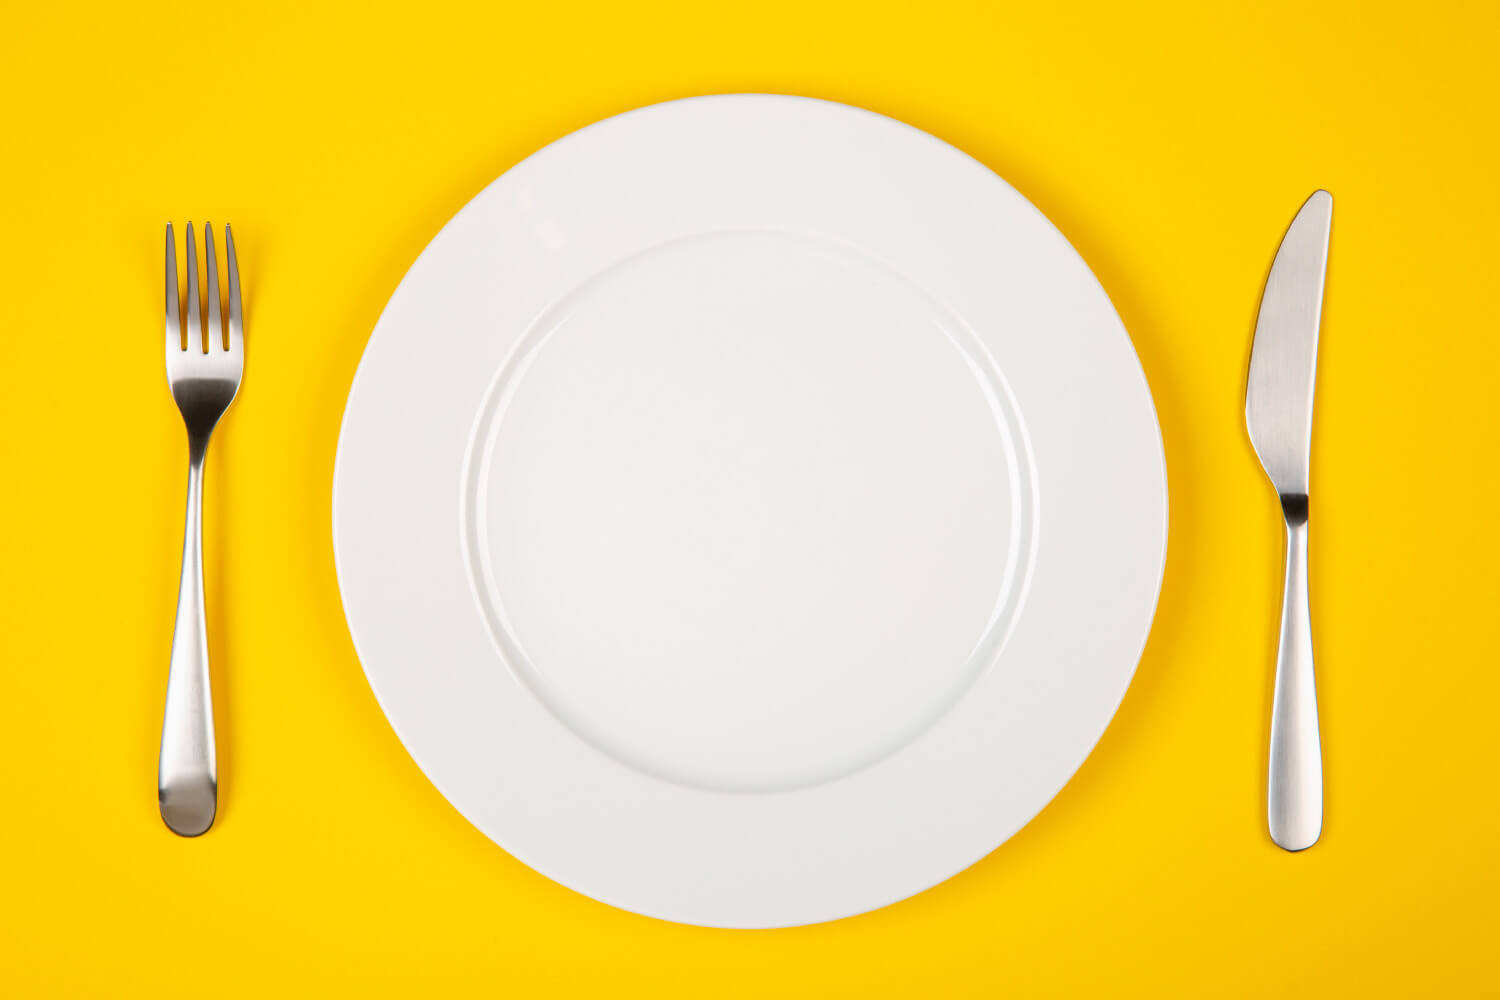 Aerial view of an empty place setting on a yellow background